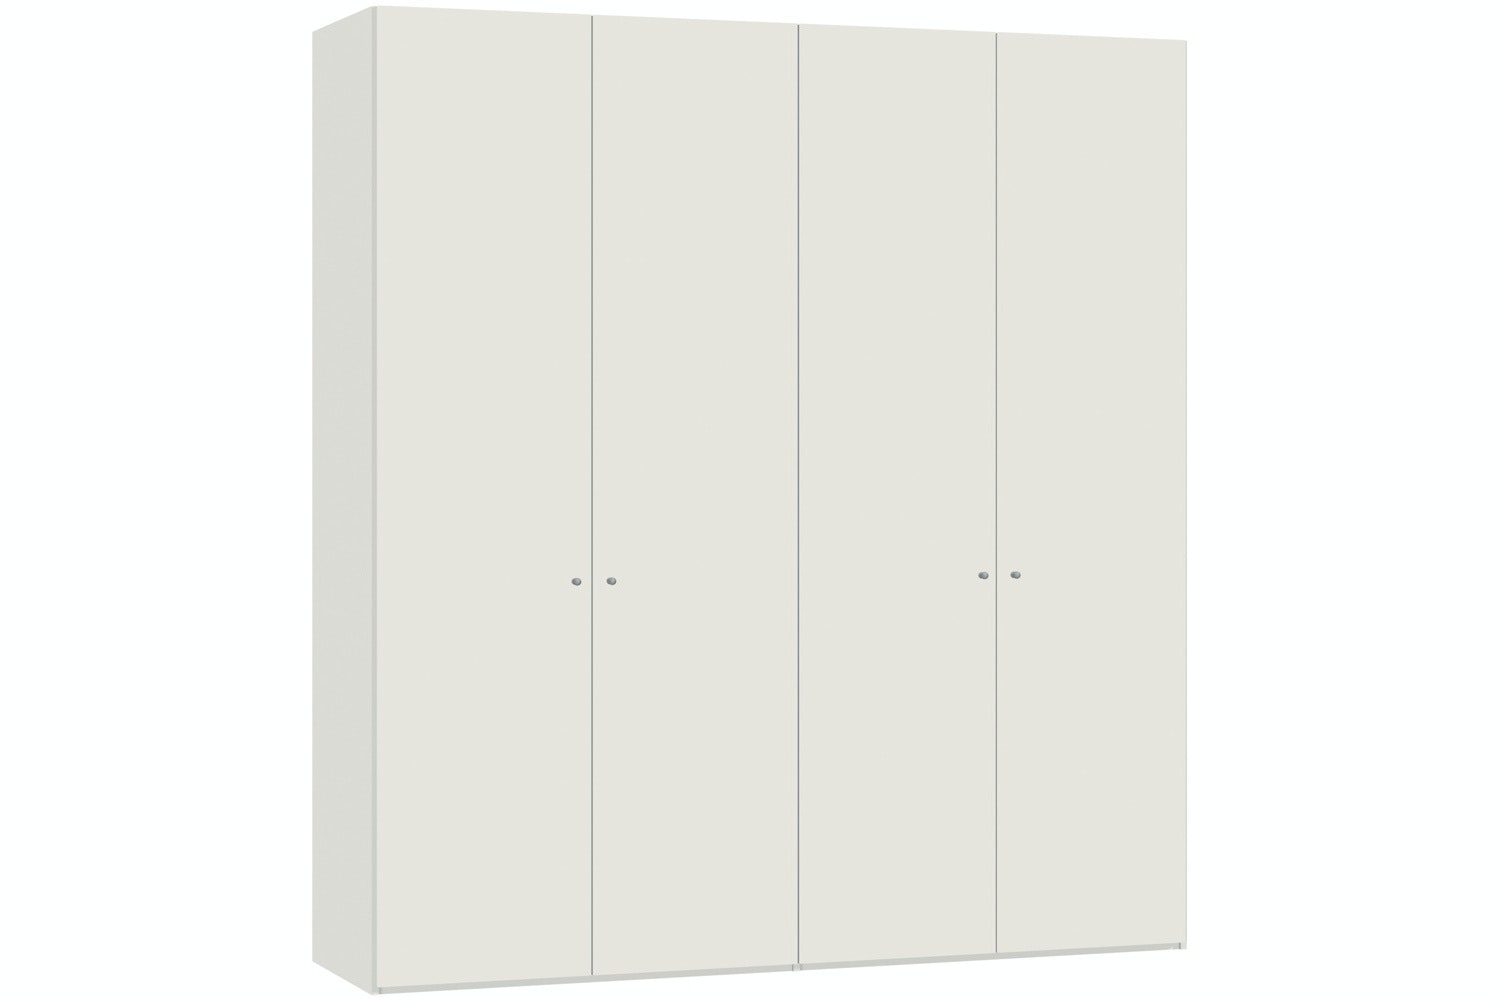 Yasmin Hinged 4 Door Wardrobe 203Cm | White High Gloss